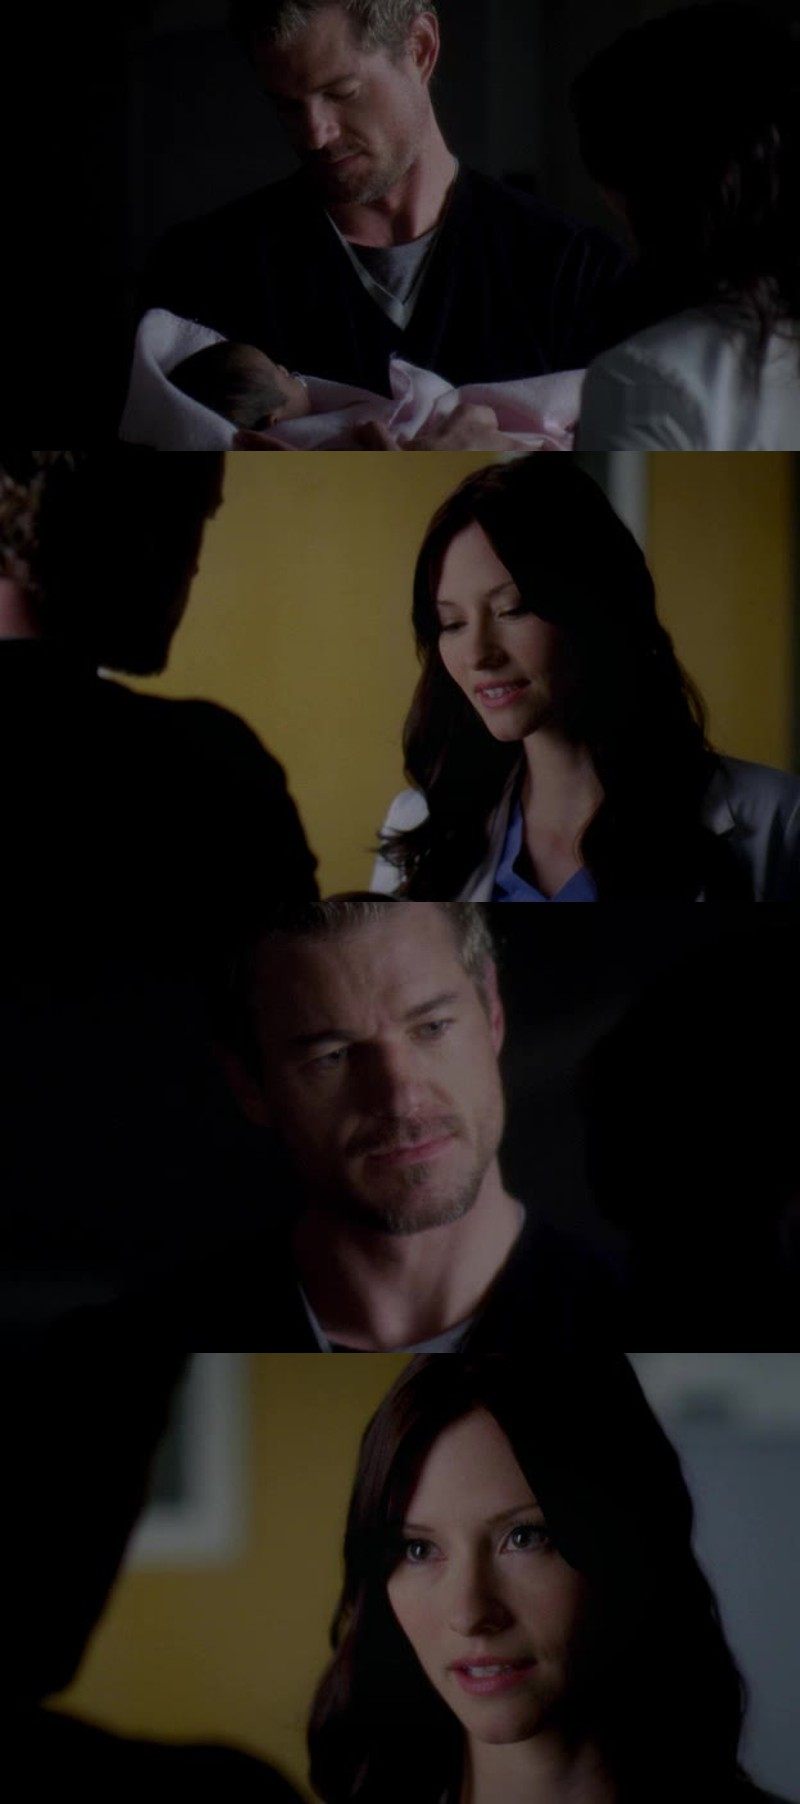 Find someone who looks at you the way Mark Sloan and Lexie Grey look at each other